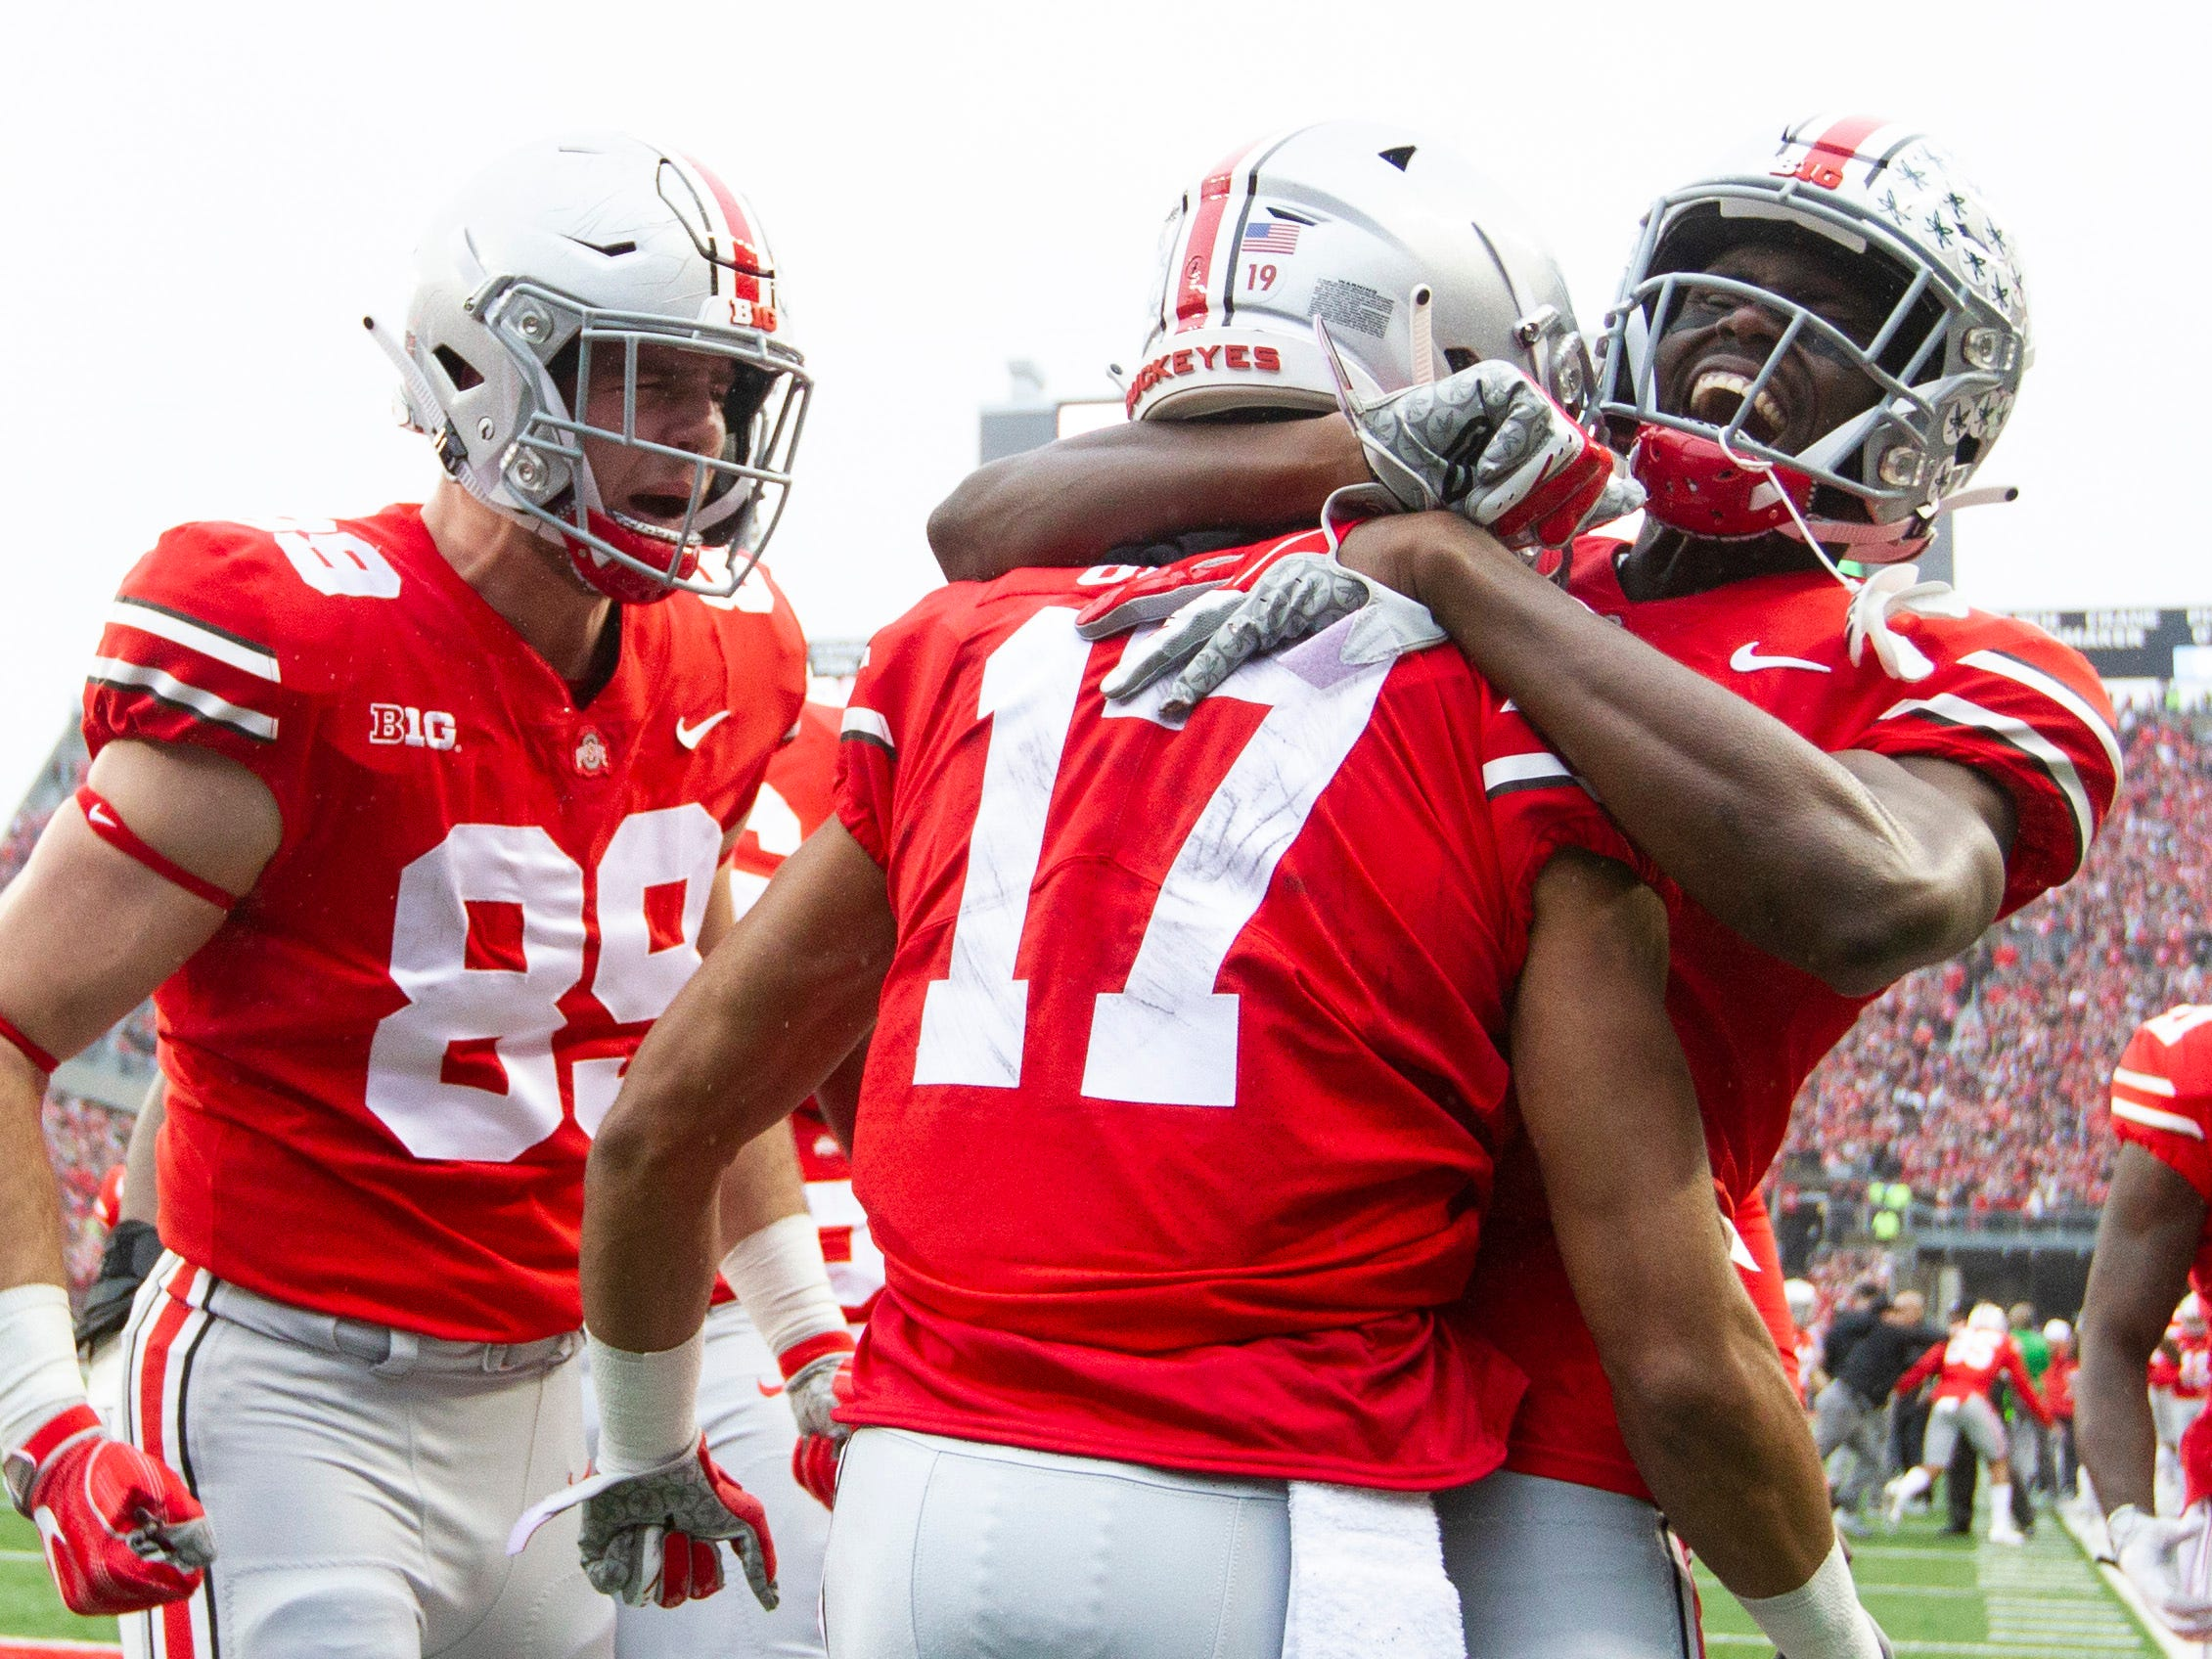 Ohio State Buckeyes wide receiver Chris Olave (17) is congratulated by tight end Luke Farrell (89) and wide receiver Binjimen Victor (9) after scoring a first-quarter touchdown against the Michigan Wolverines at Ohio Stadium.